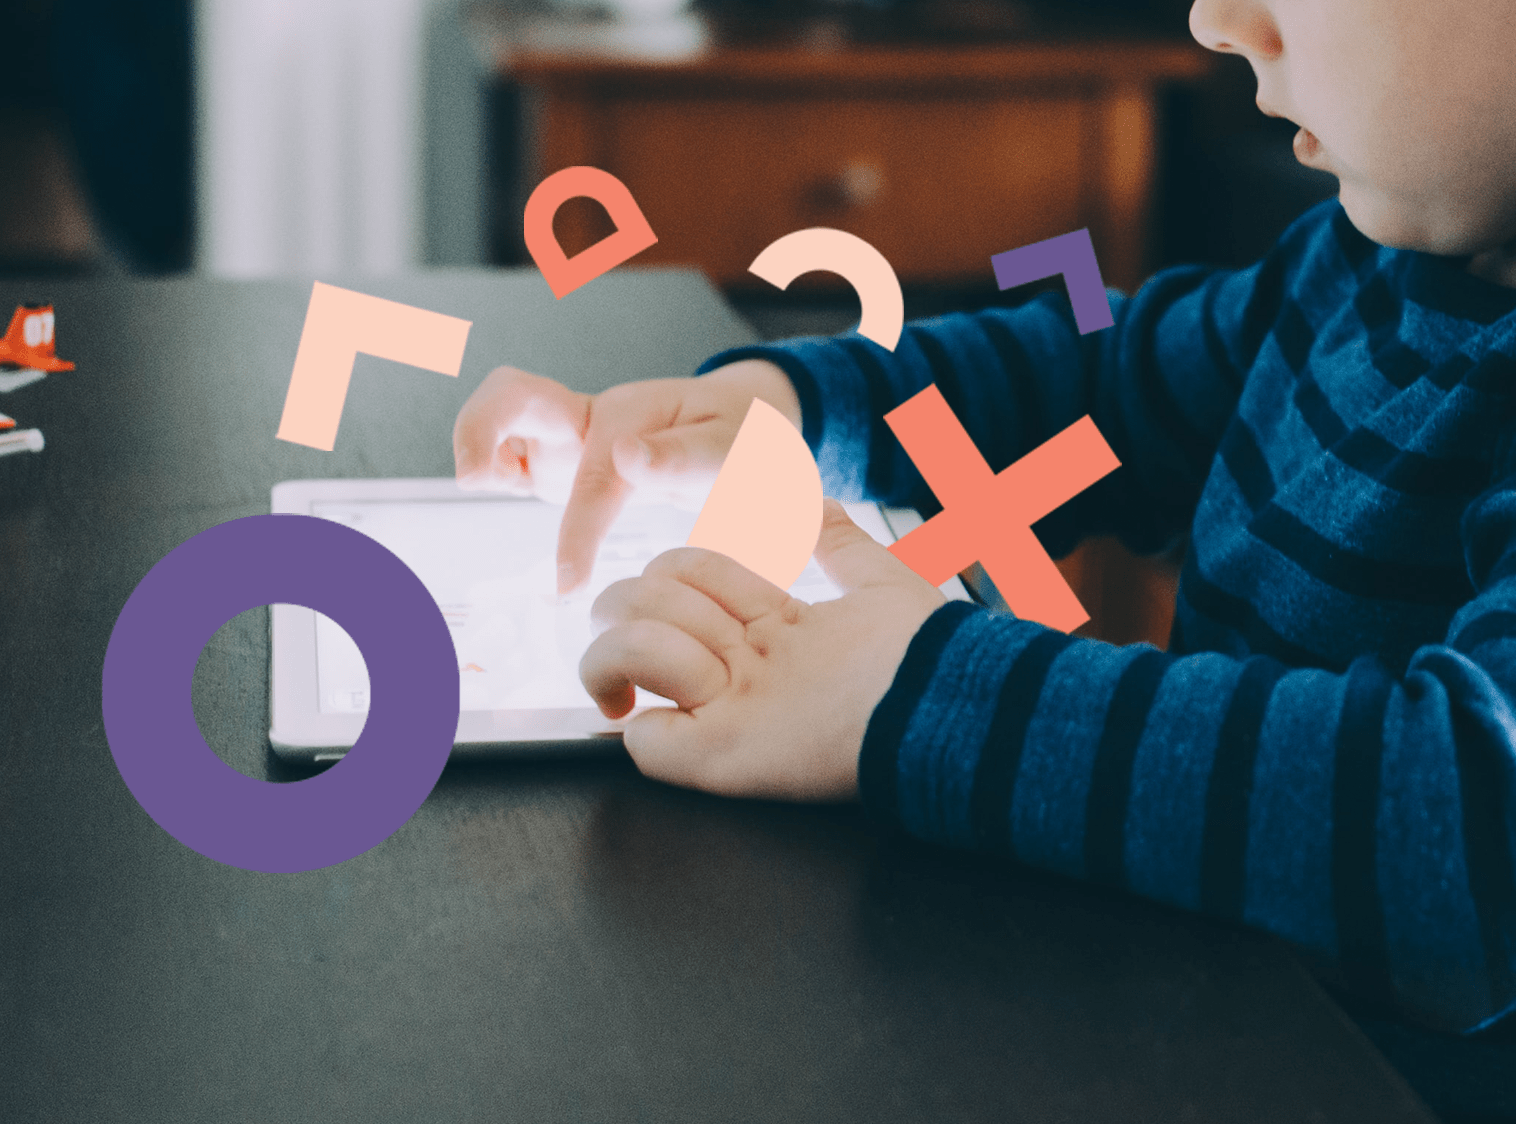 Hero image showing the hands of a toddler using a tablet with OXD brand letters